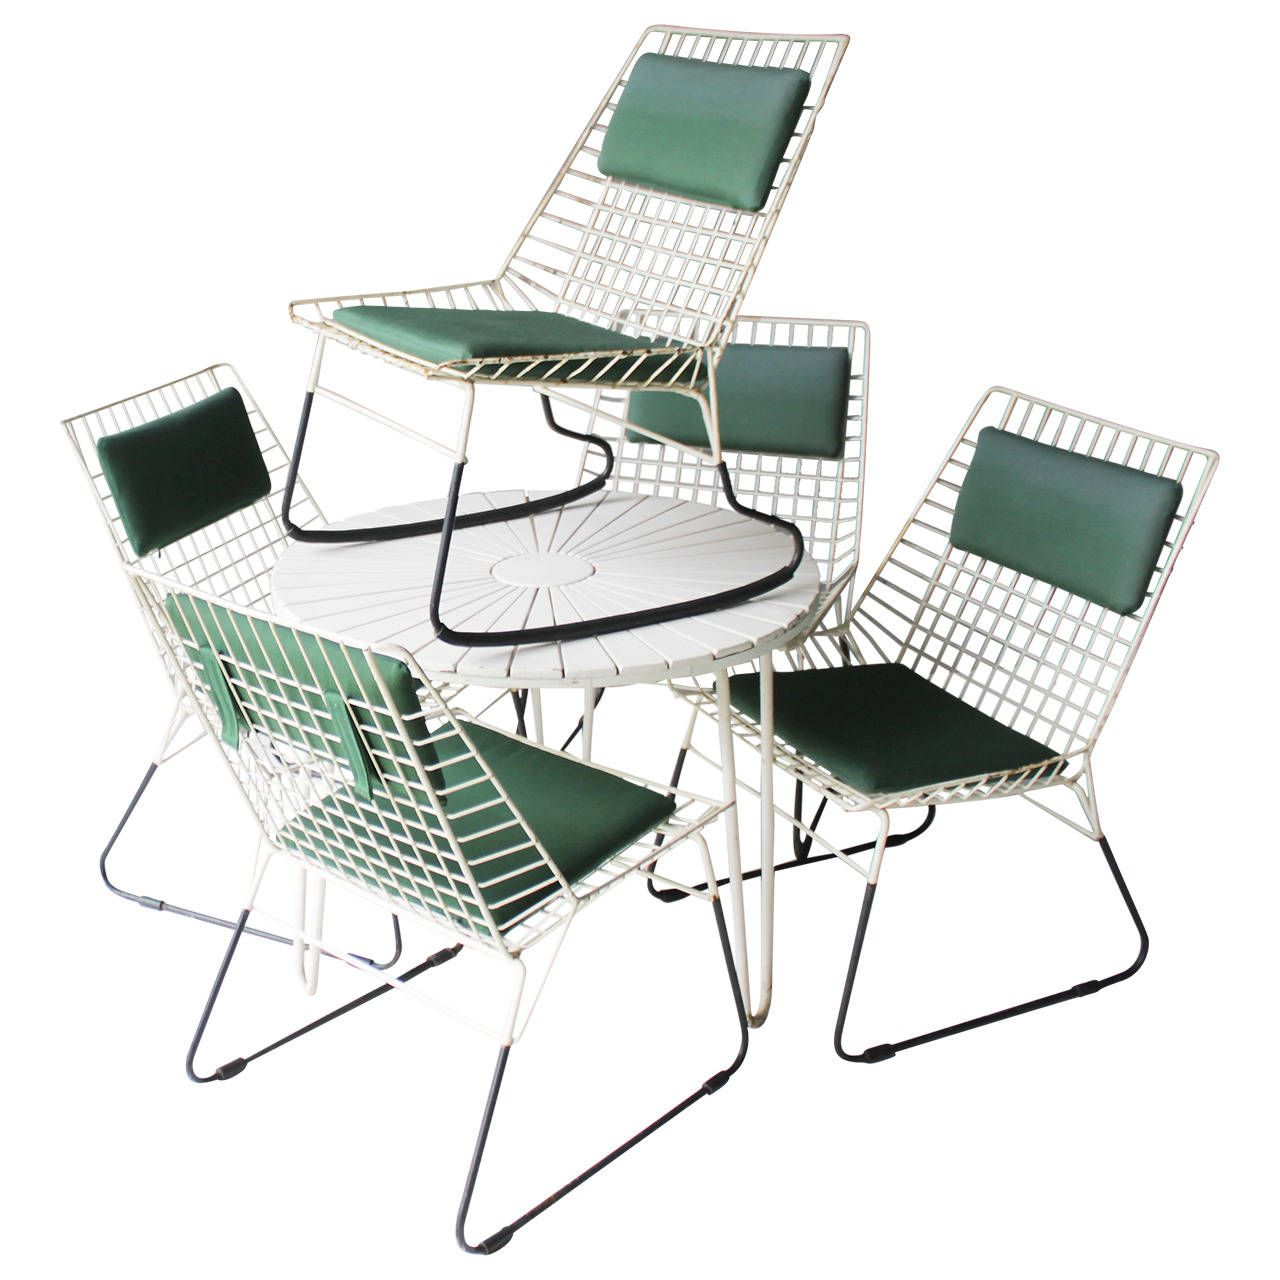 Set of Five Flamingo Chairs by Cees Braakman for Pastoe | From a unique collection of antique and modern chairs at https://www.1stdibs.com/furniture/seating/chairs/